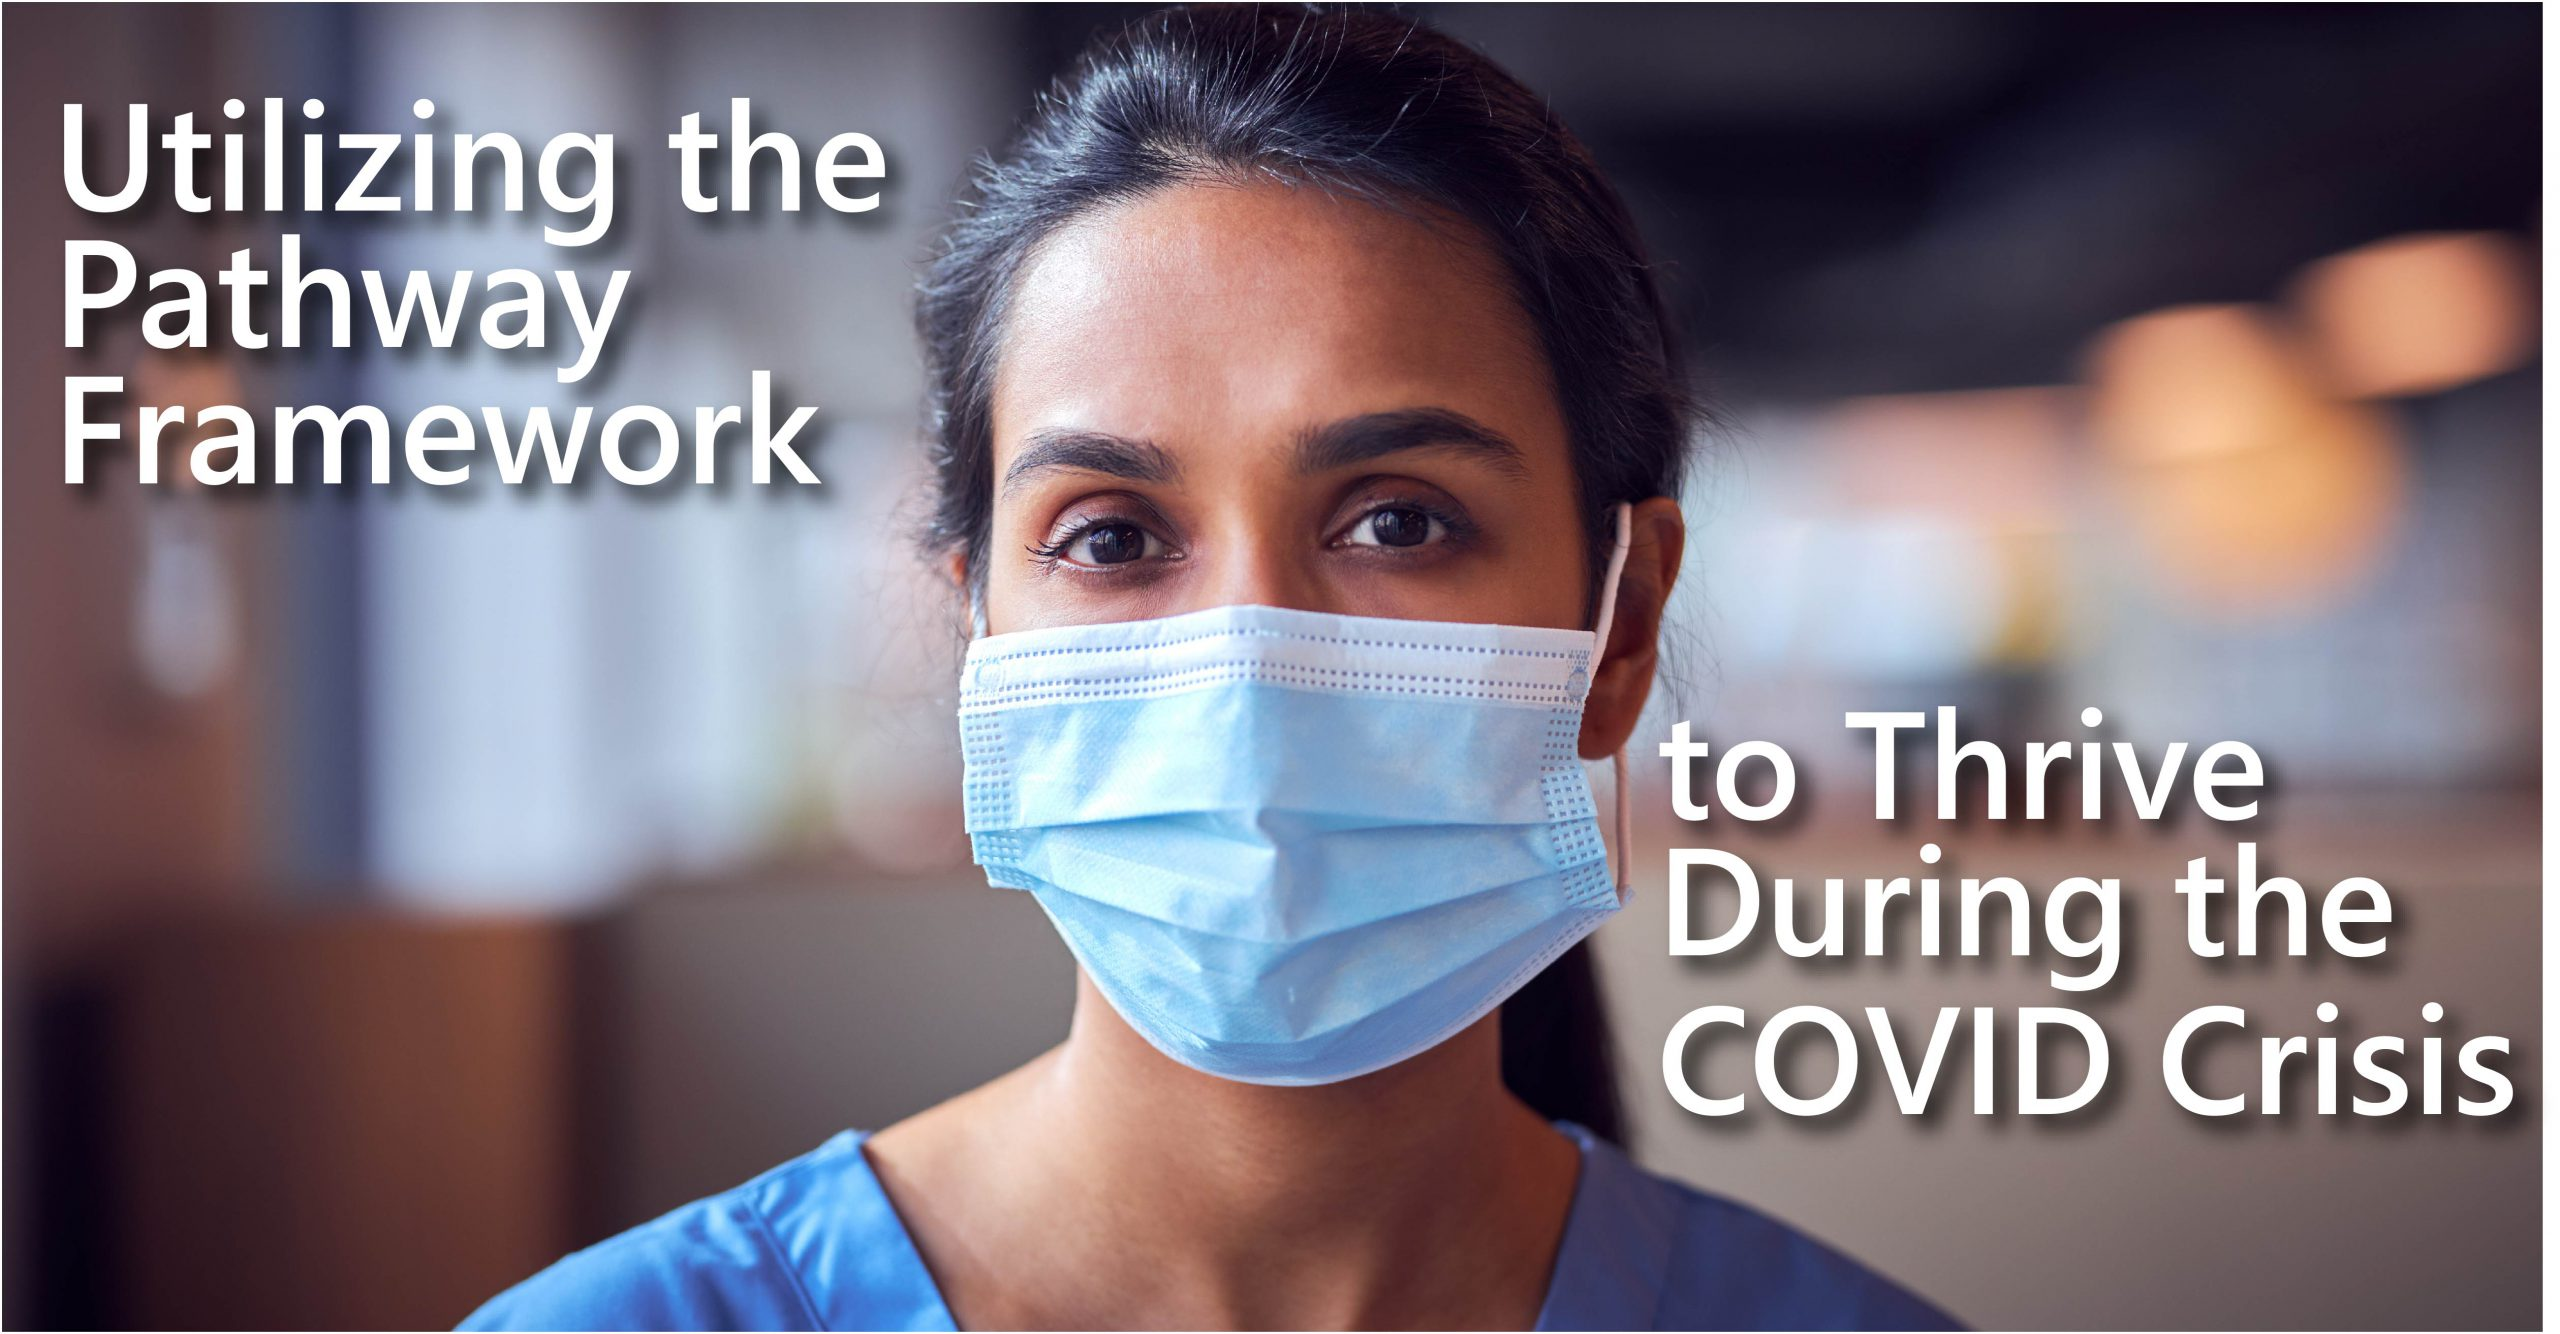 Title of article superimposed over a weary-looking nurse wearing a medical mask